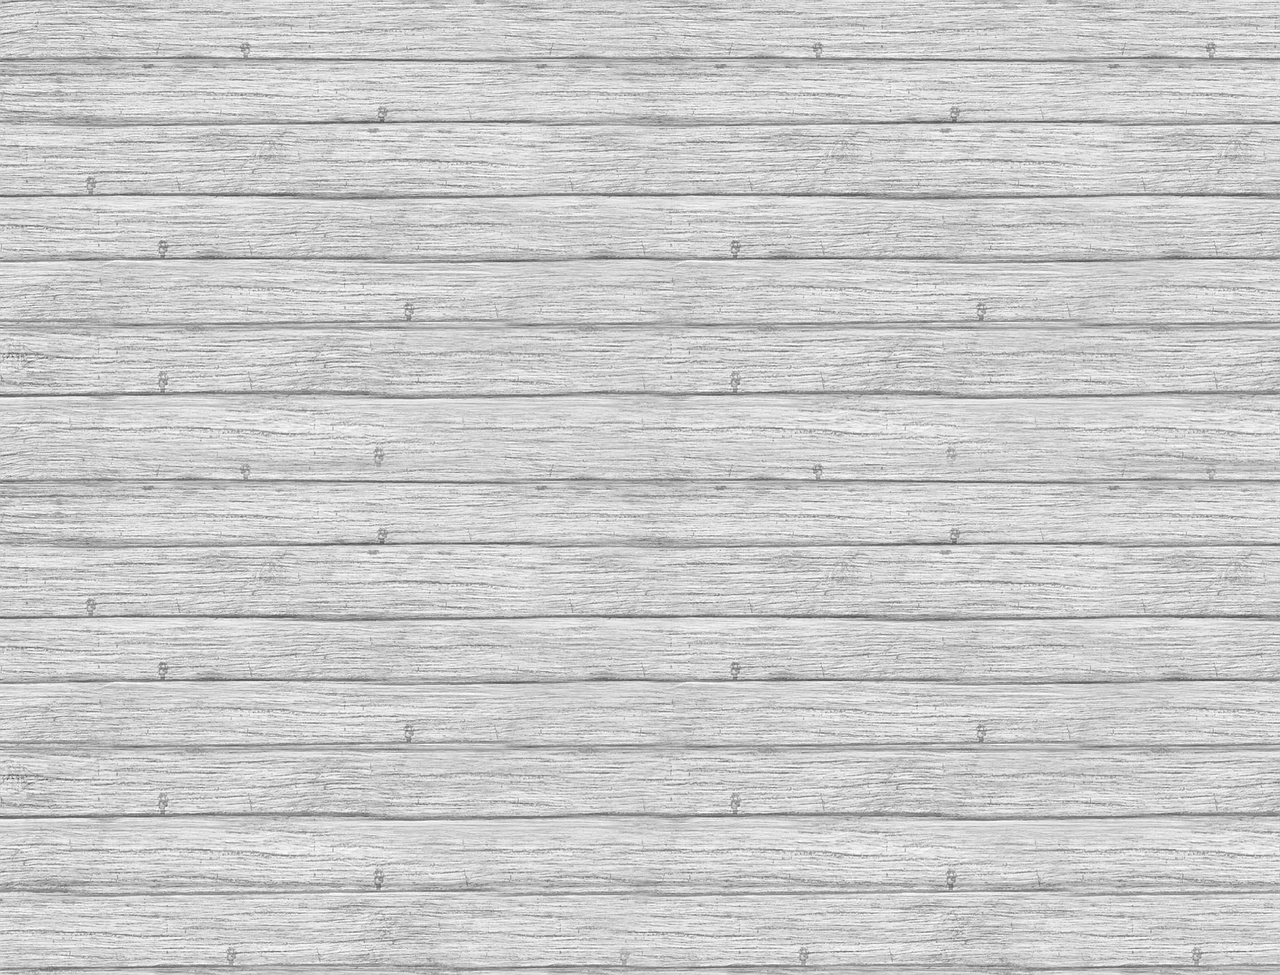 White Wood Wood Texture Wooden Boards Free Picture